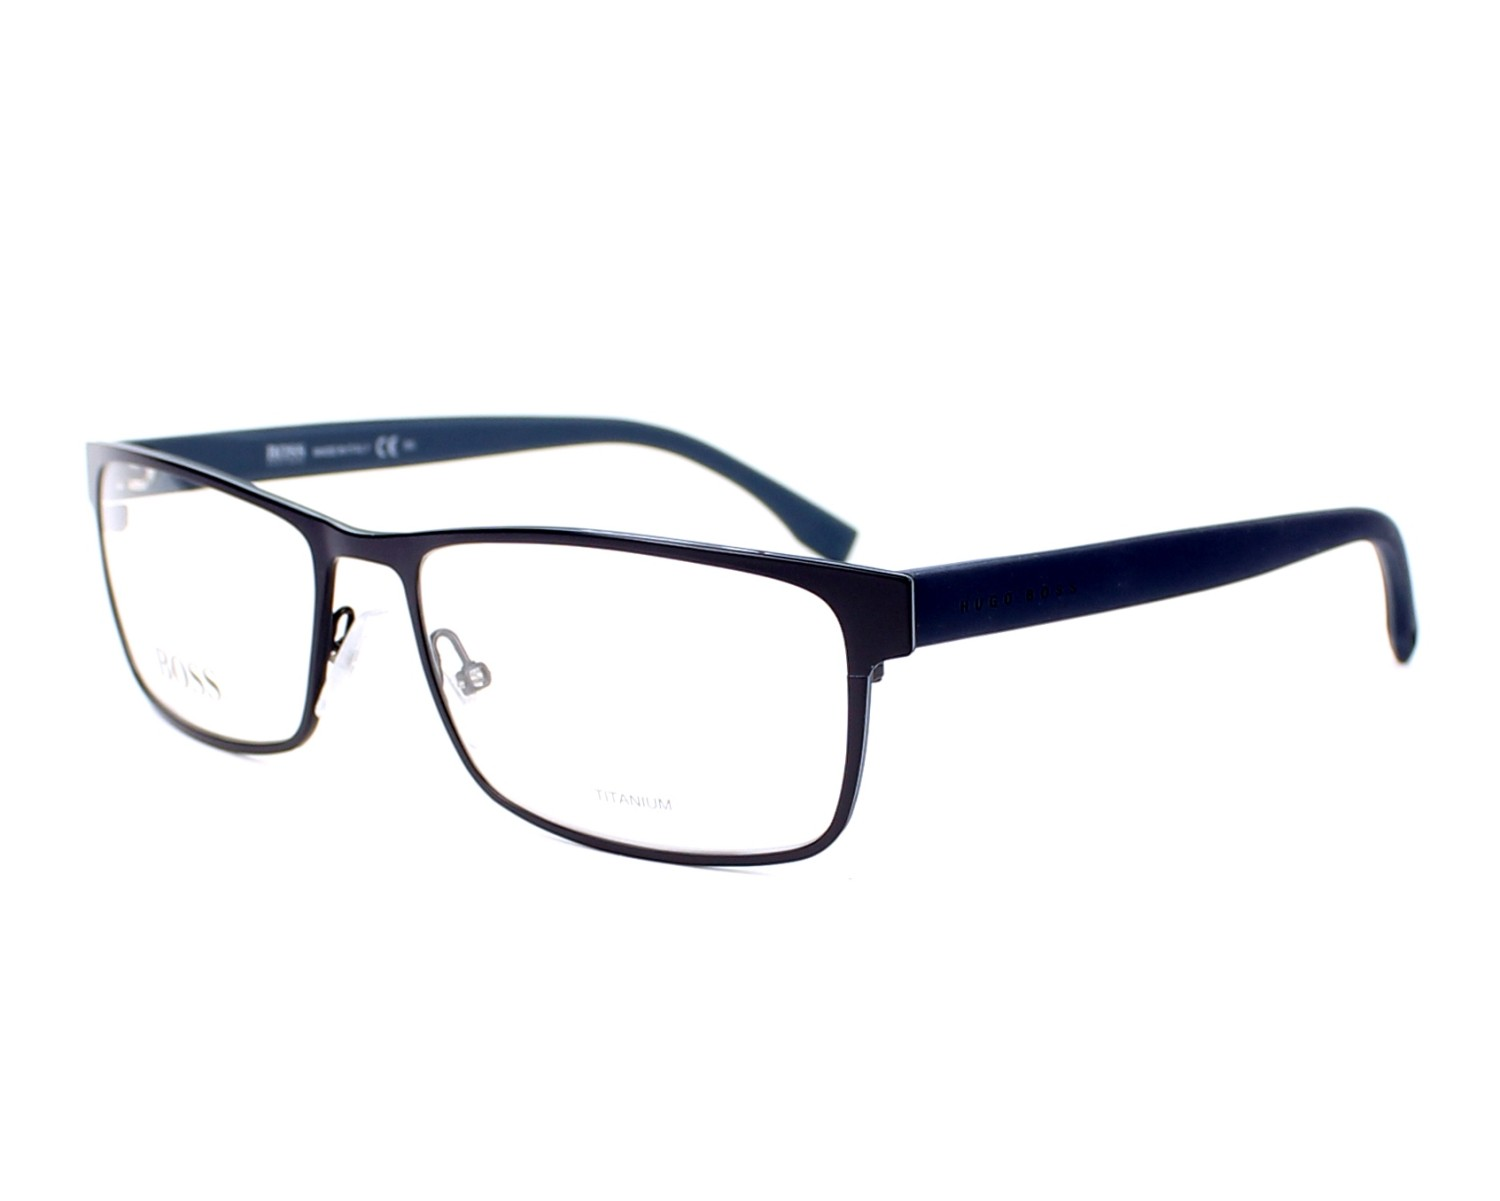 Hugo Boss Eyeglasses Boss 0740 Kc7 Blue Visionet